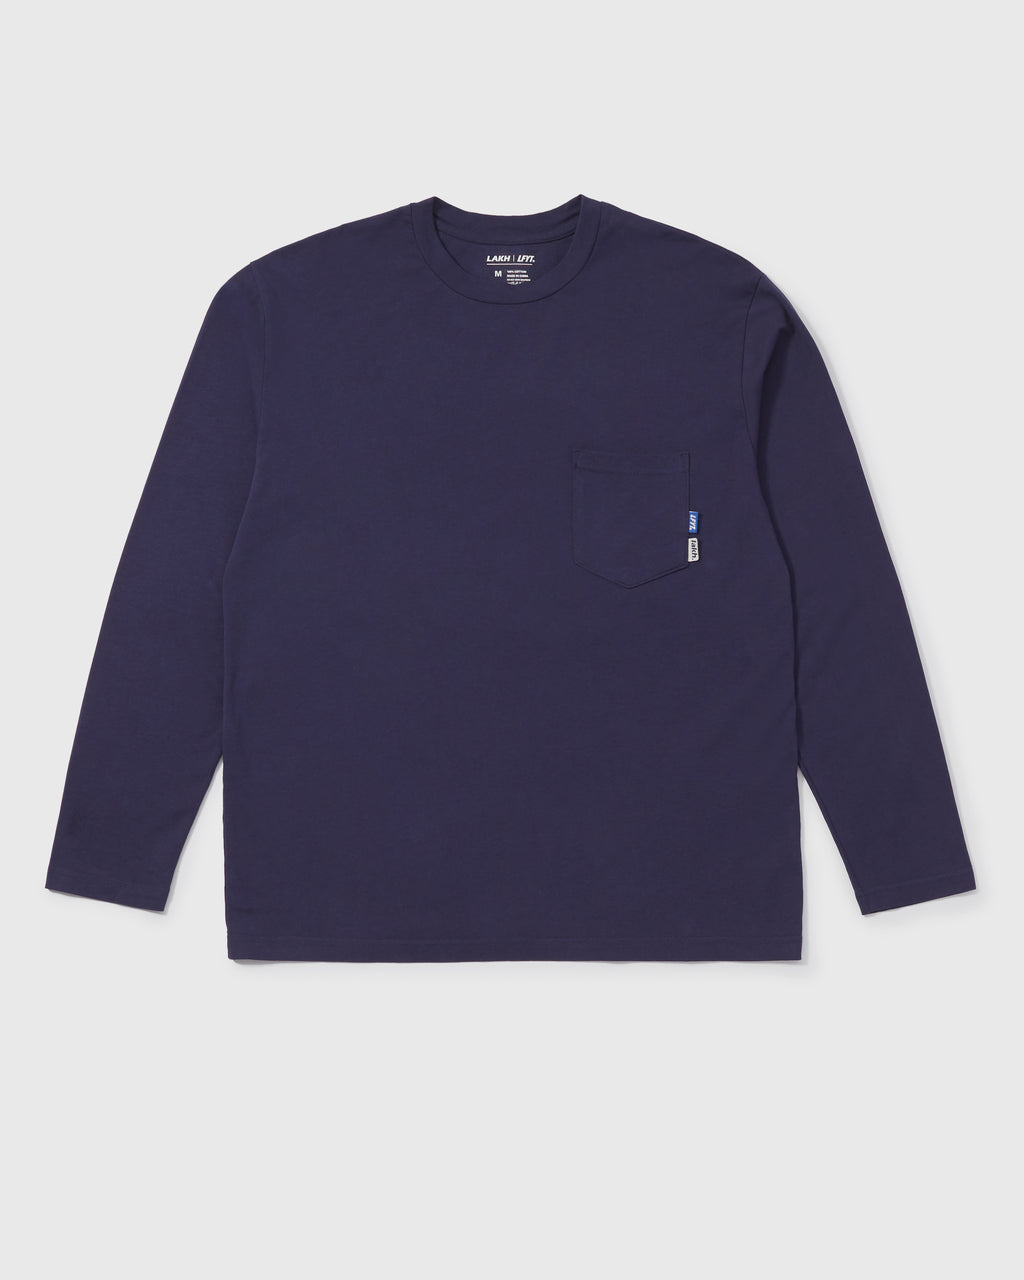 LAKH X LFYT Pocket Long Tee - Navy